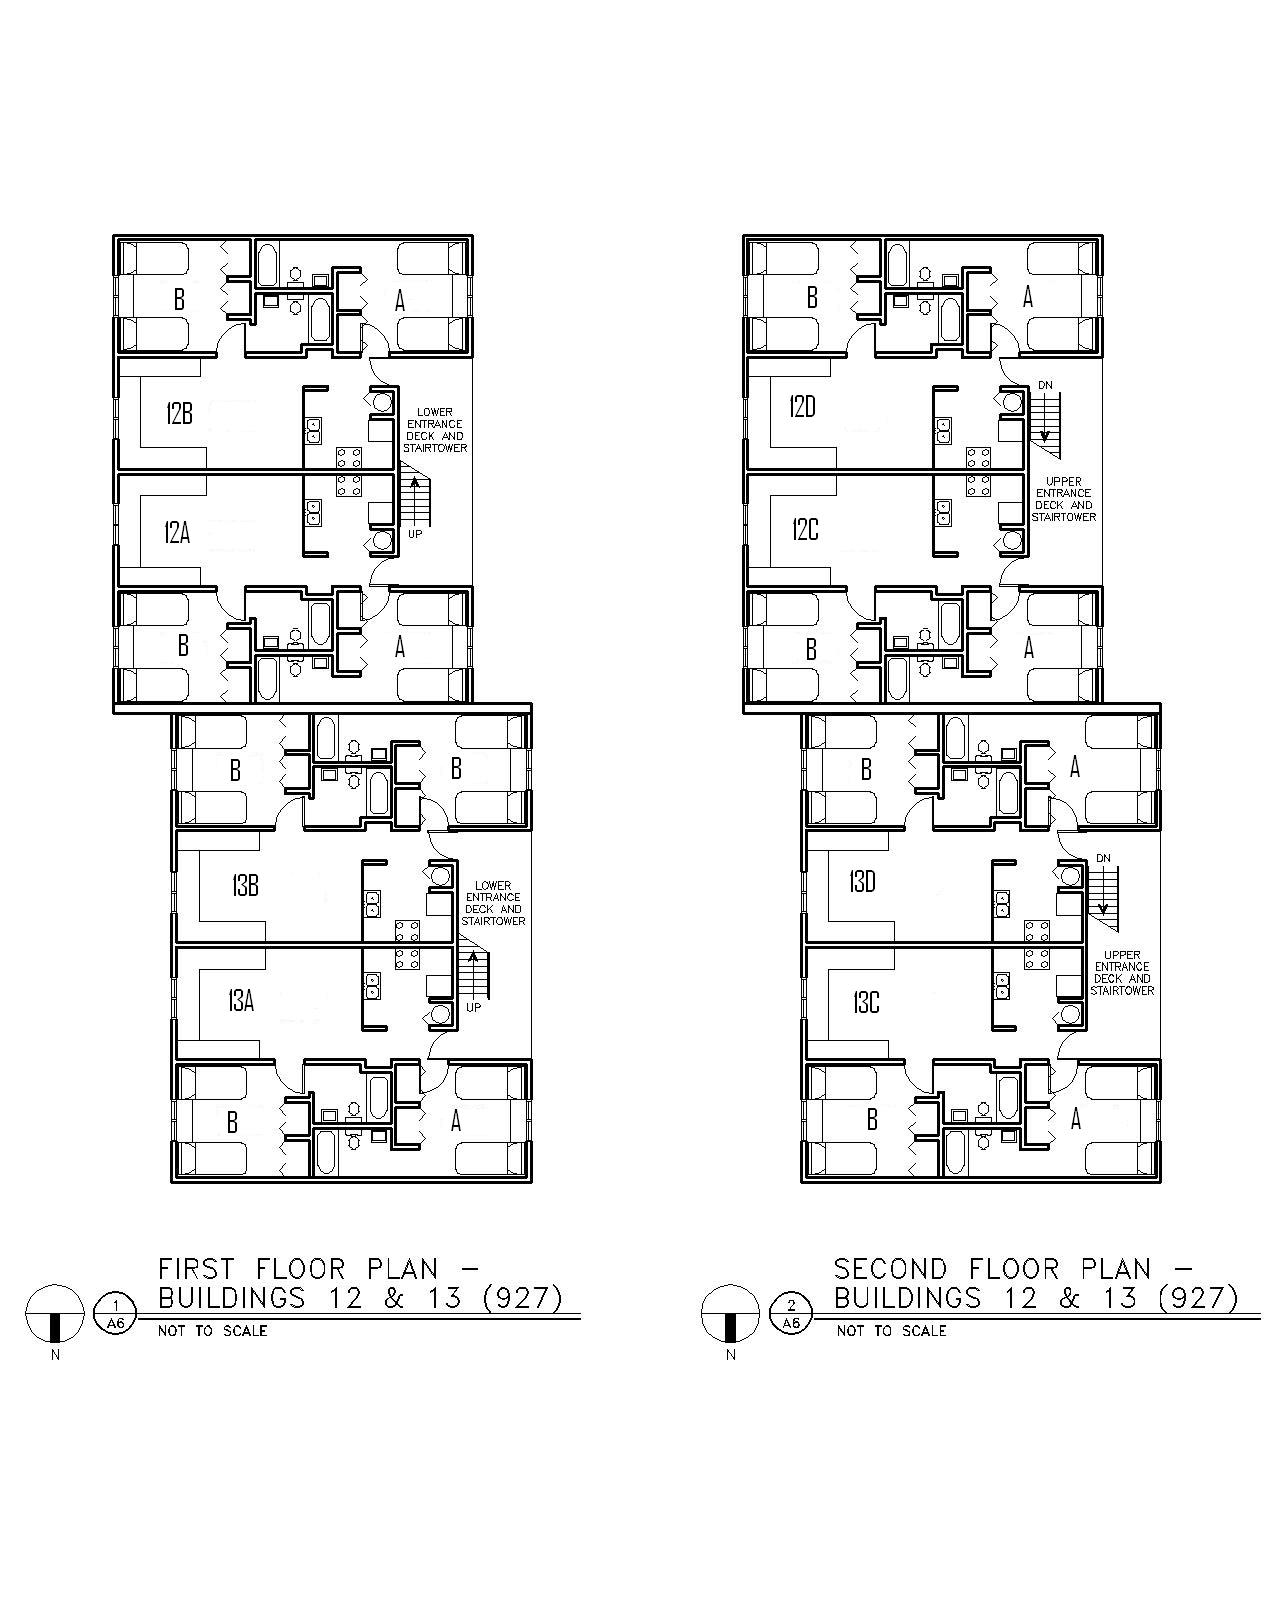 Floor Plan for Buildings 12 & 13